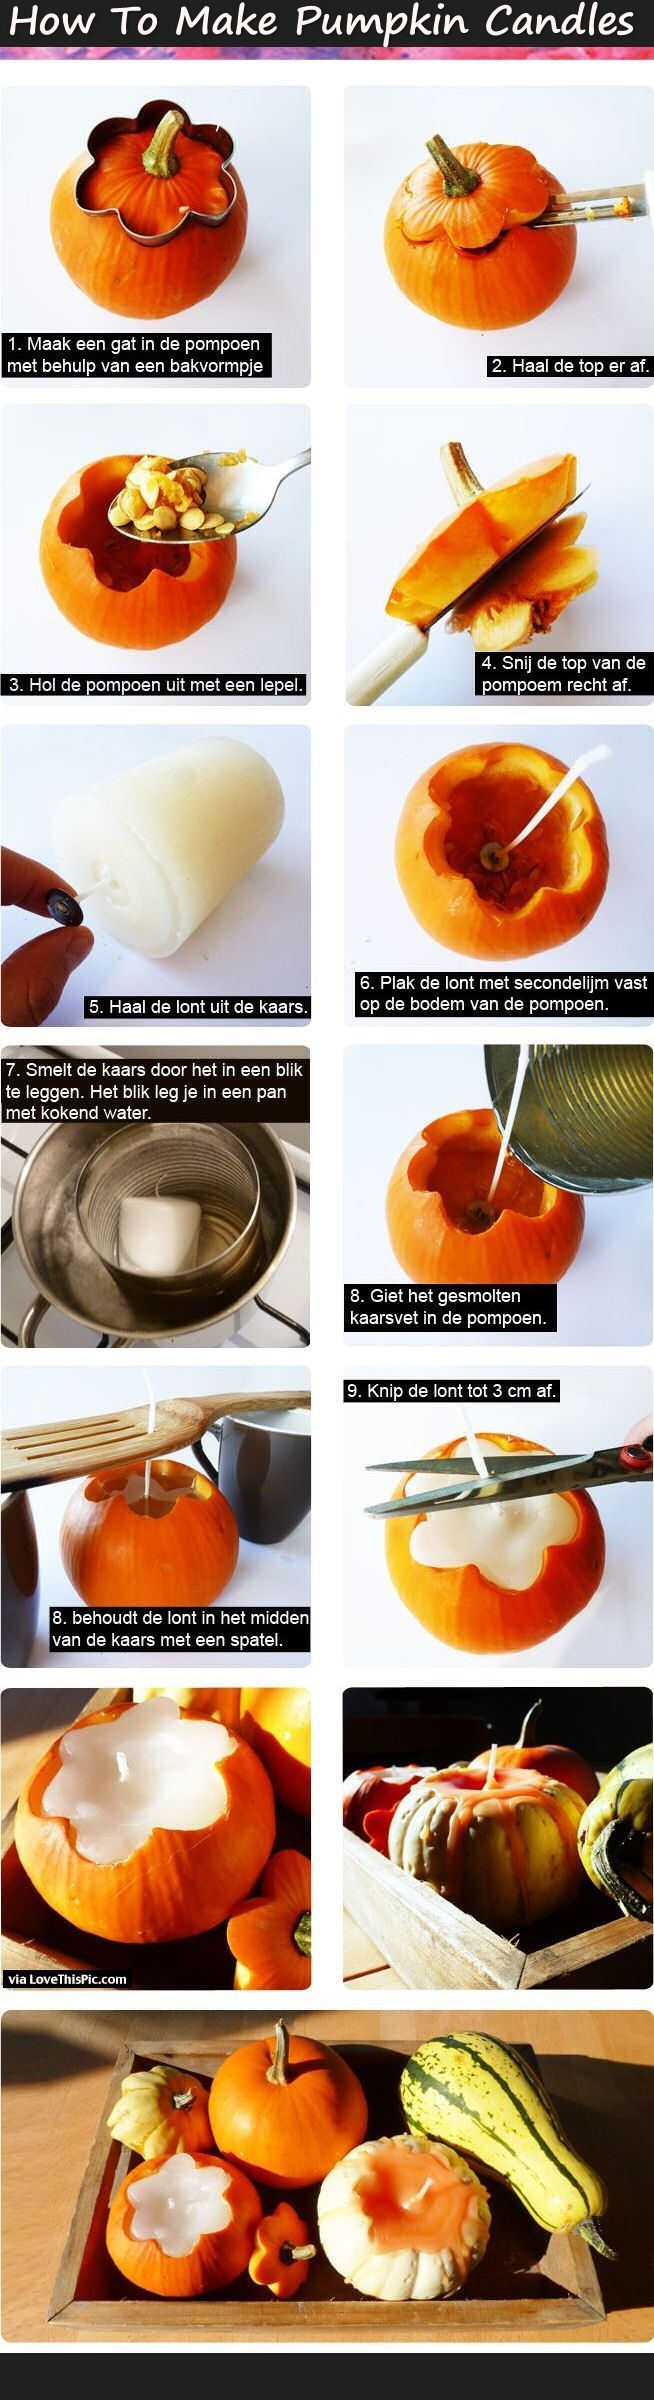 Autumn Inspiration How To Make Pumpkin Candles Pictures, Photos, and Images for Facebook, Tumblr, Pinterest, and Twitter